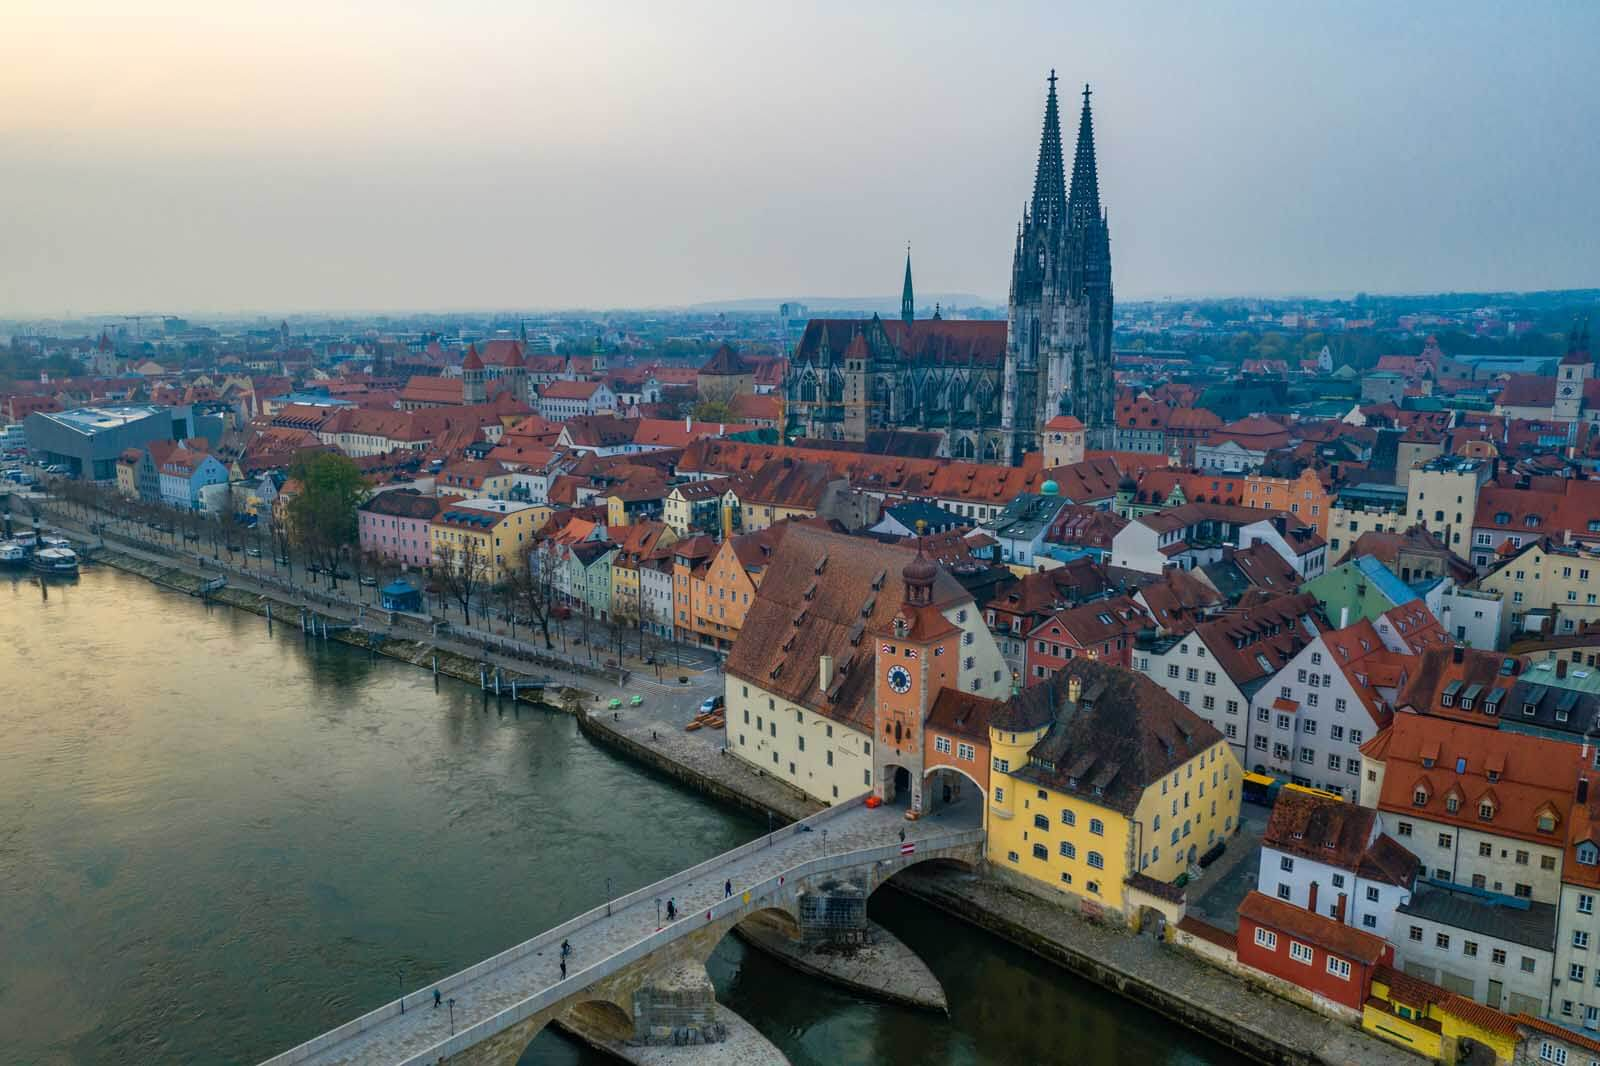 View of Regensburg Germany from above